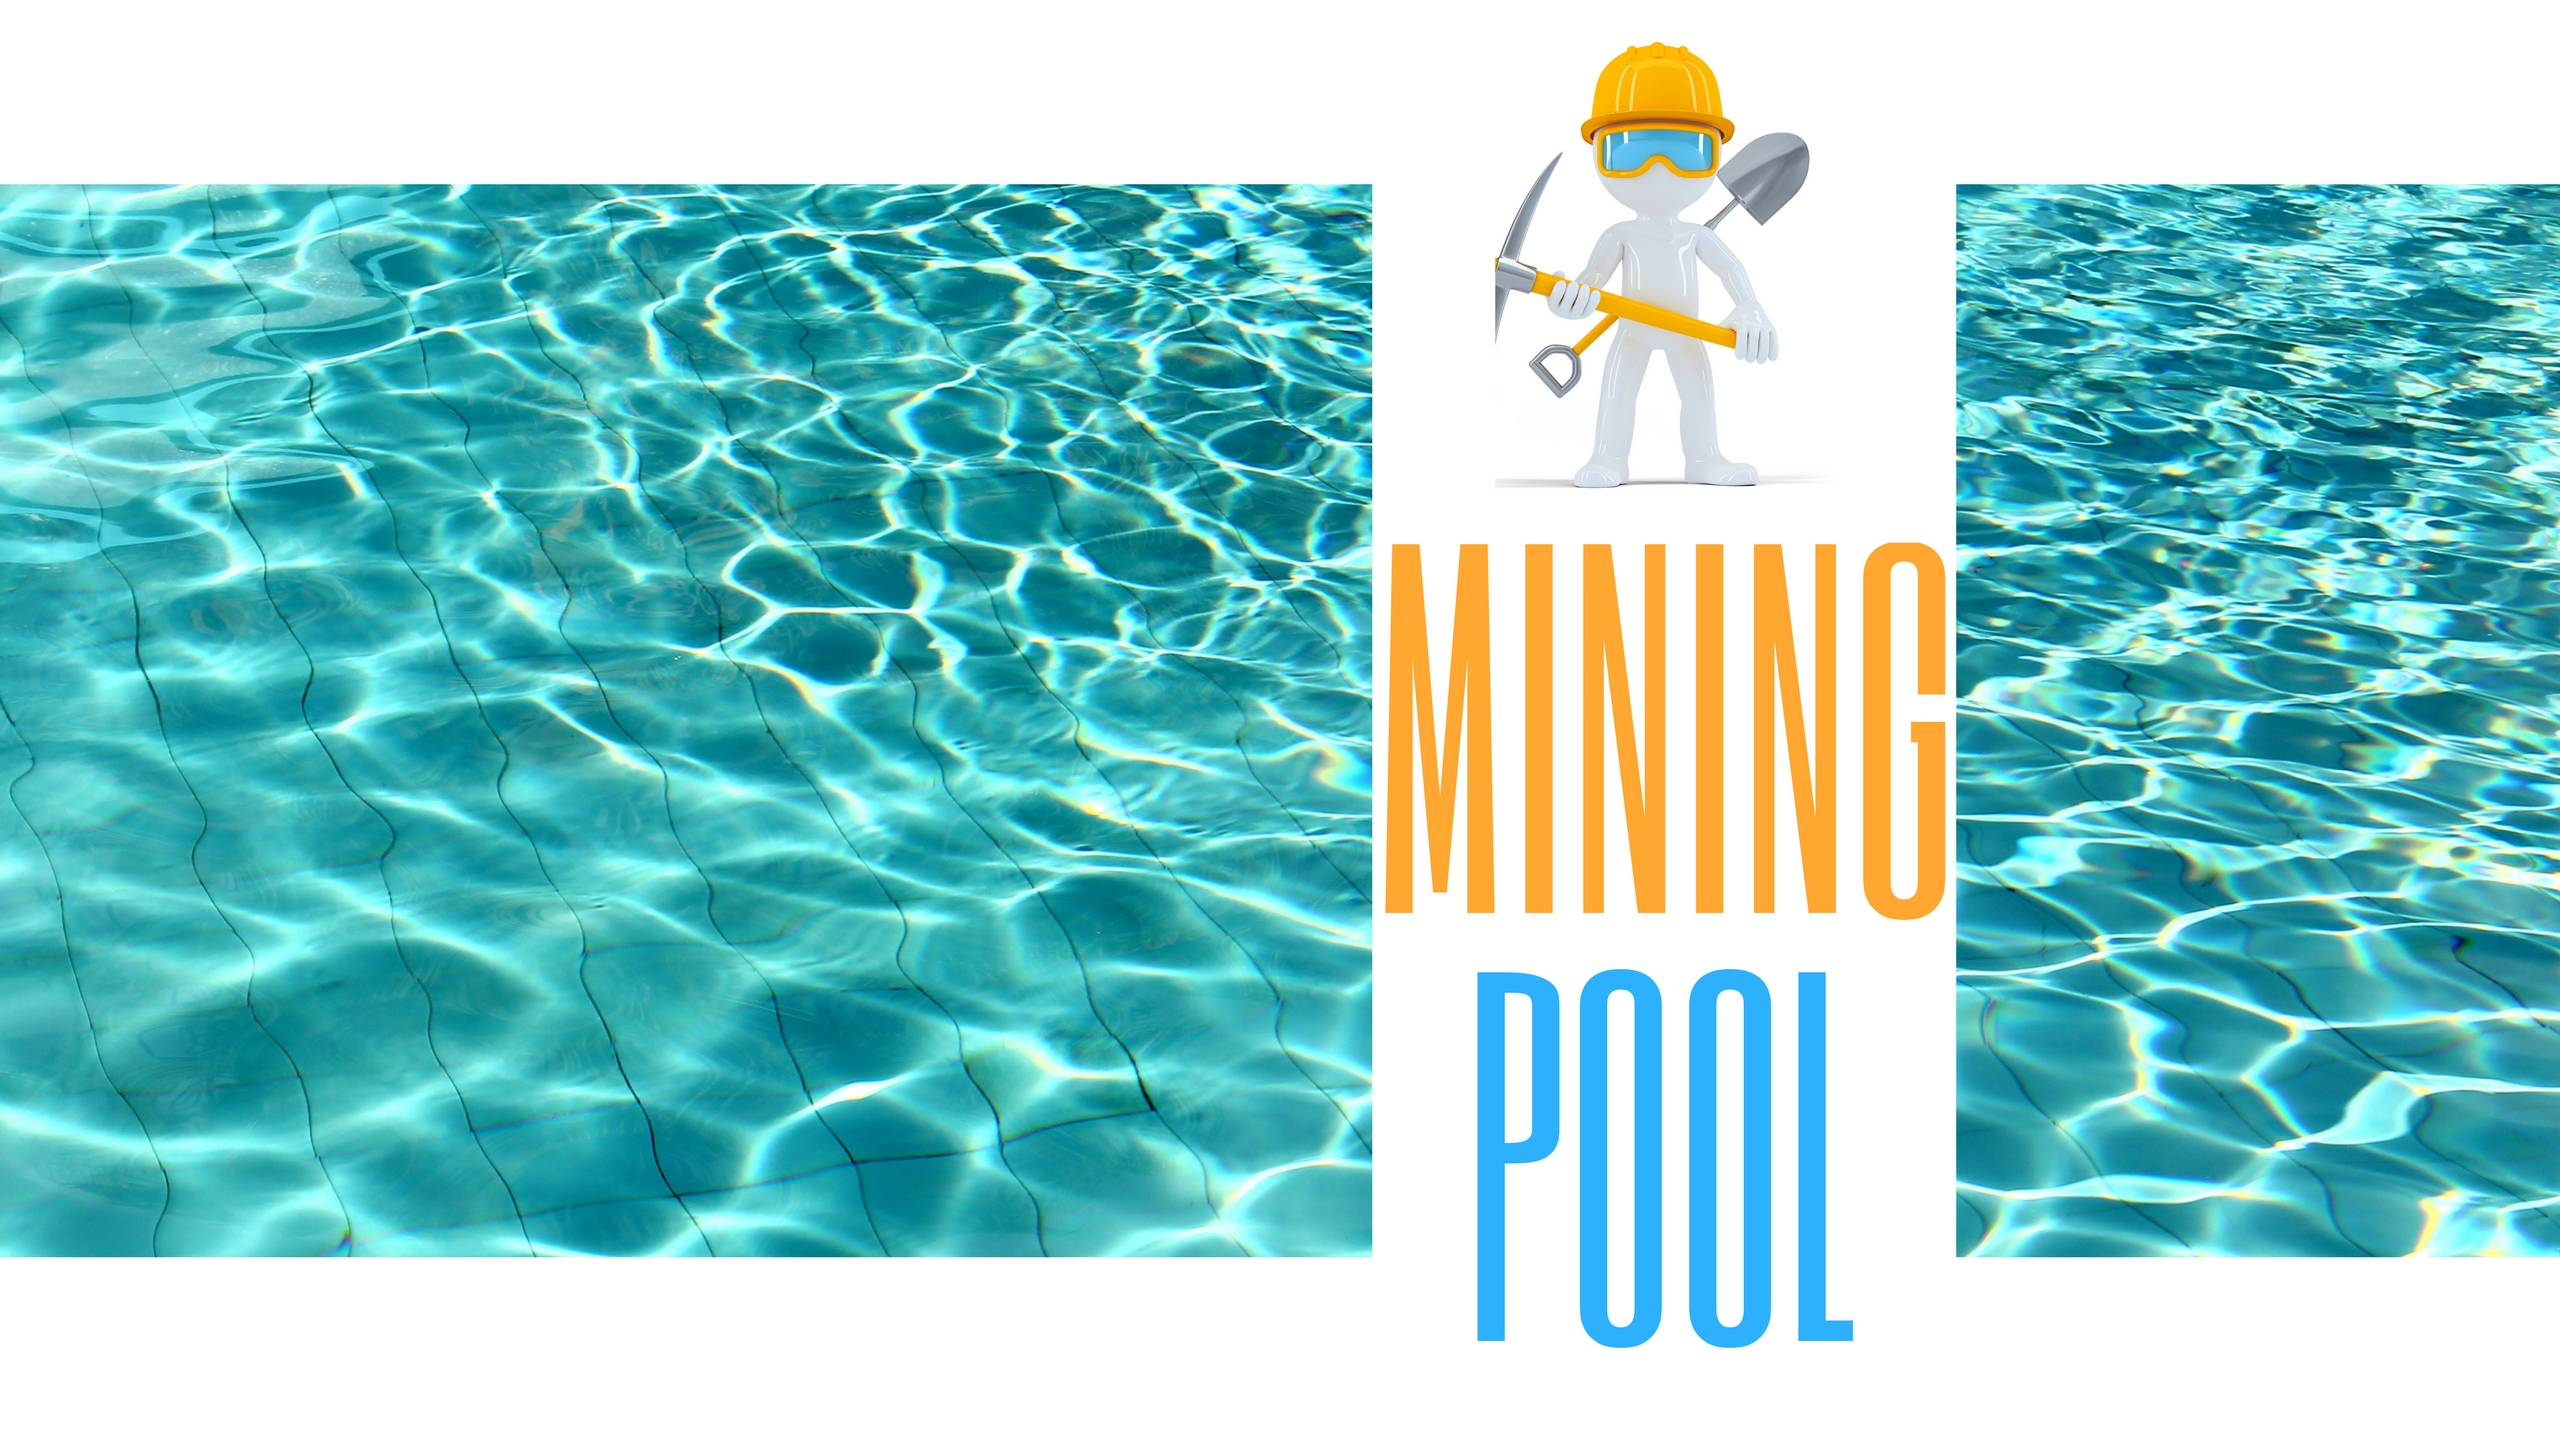 GUIDE] What Is Mining Pool? Setting Up Litecoin Mining Pool